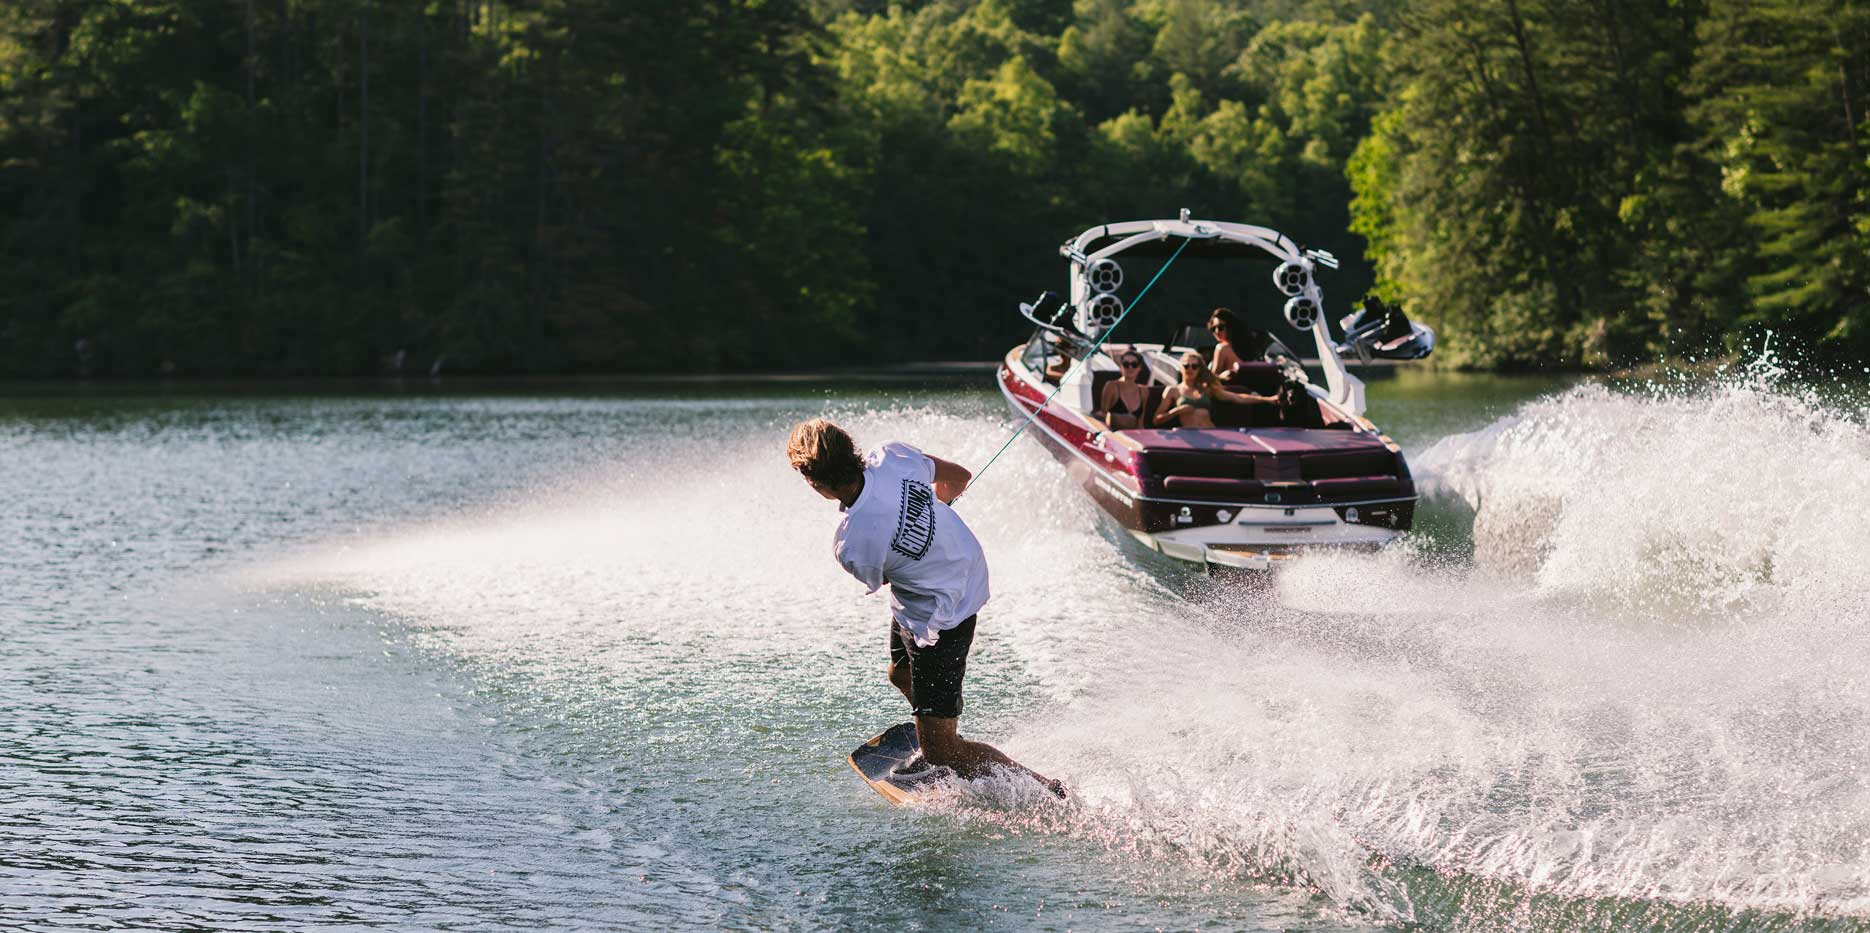 Watersports couldn't get more fun than setting up on the ultimate playground behind the 22 LSV.